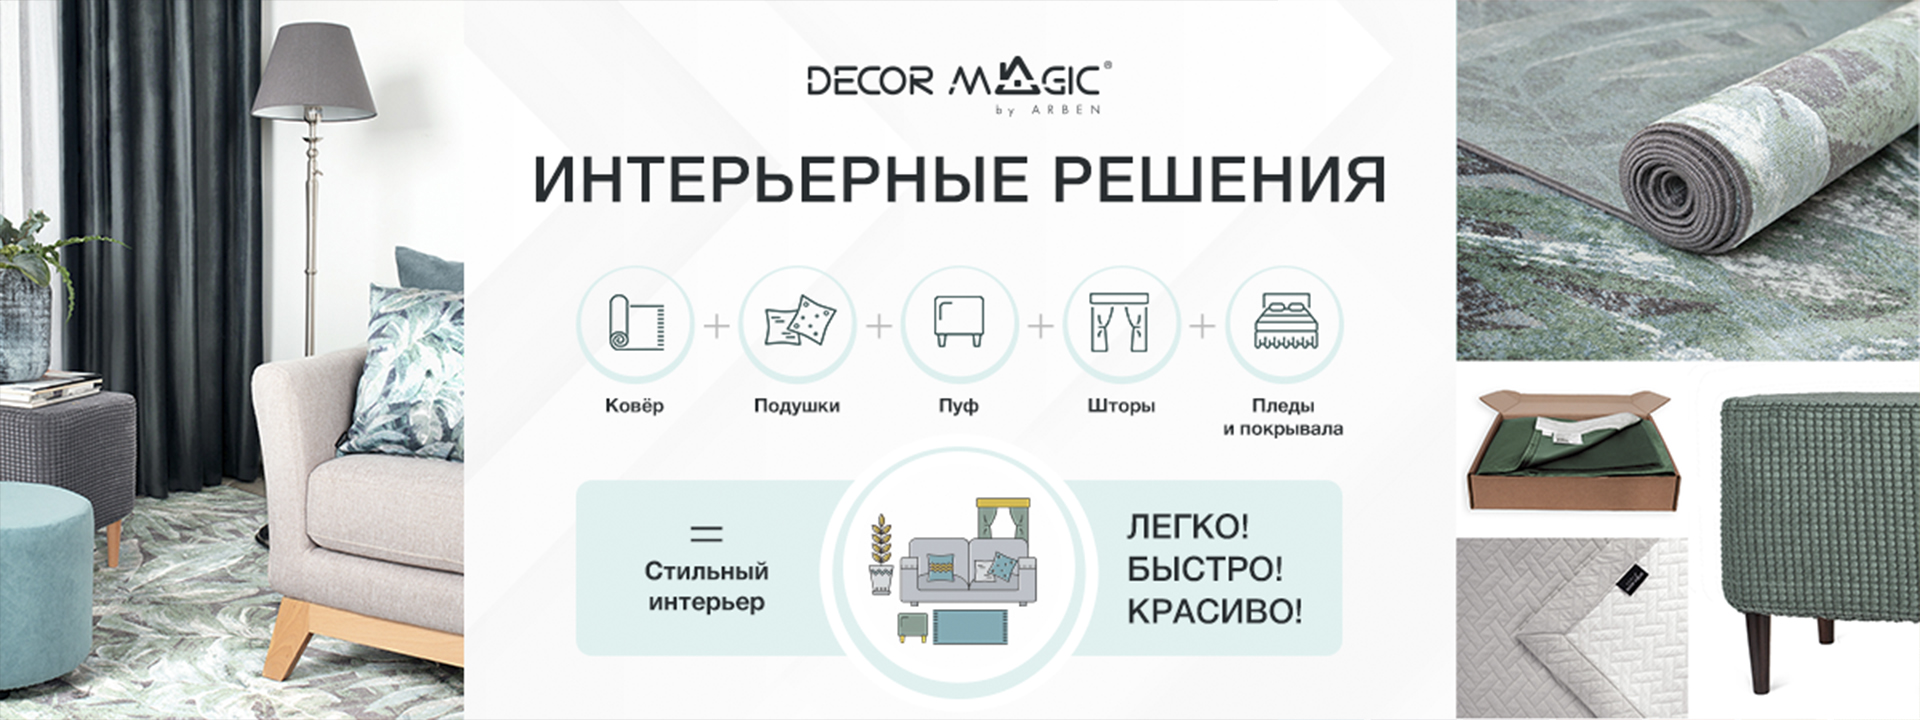 Decor Magic